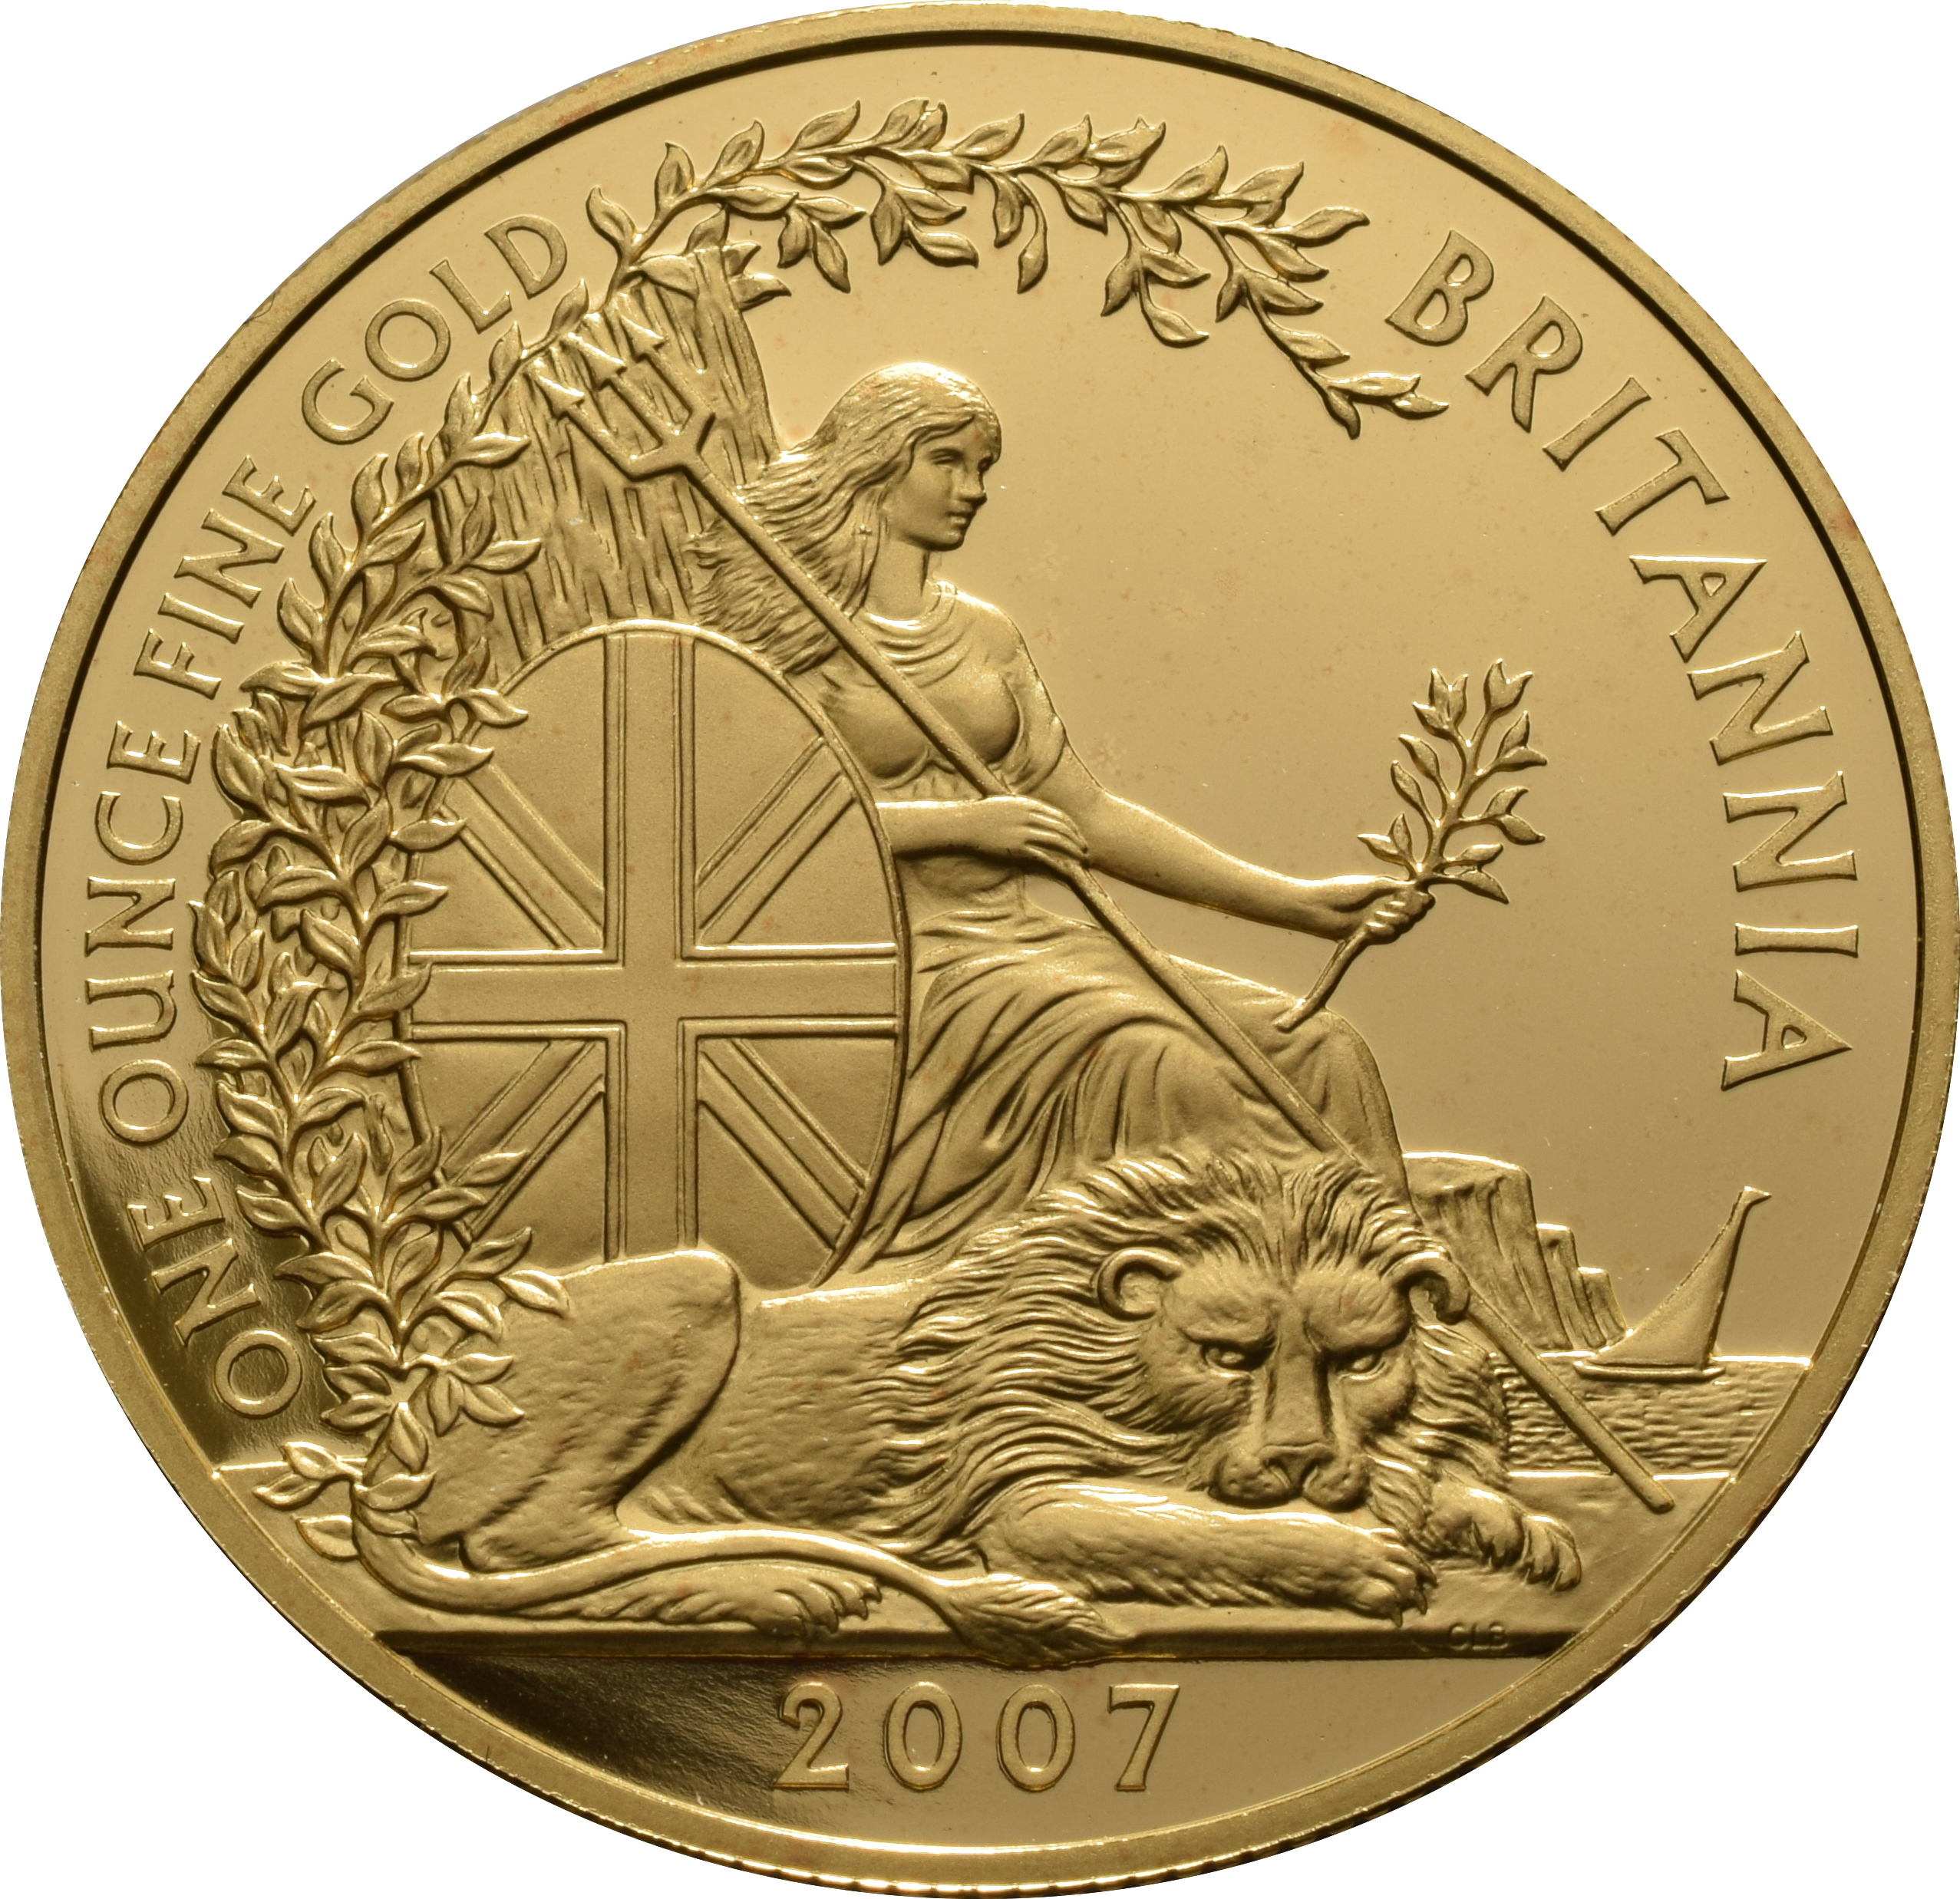 2007 Proof Britannia Gold 4 Coin Boxed Set 163 2 867